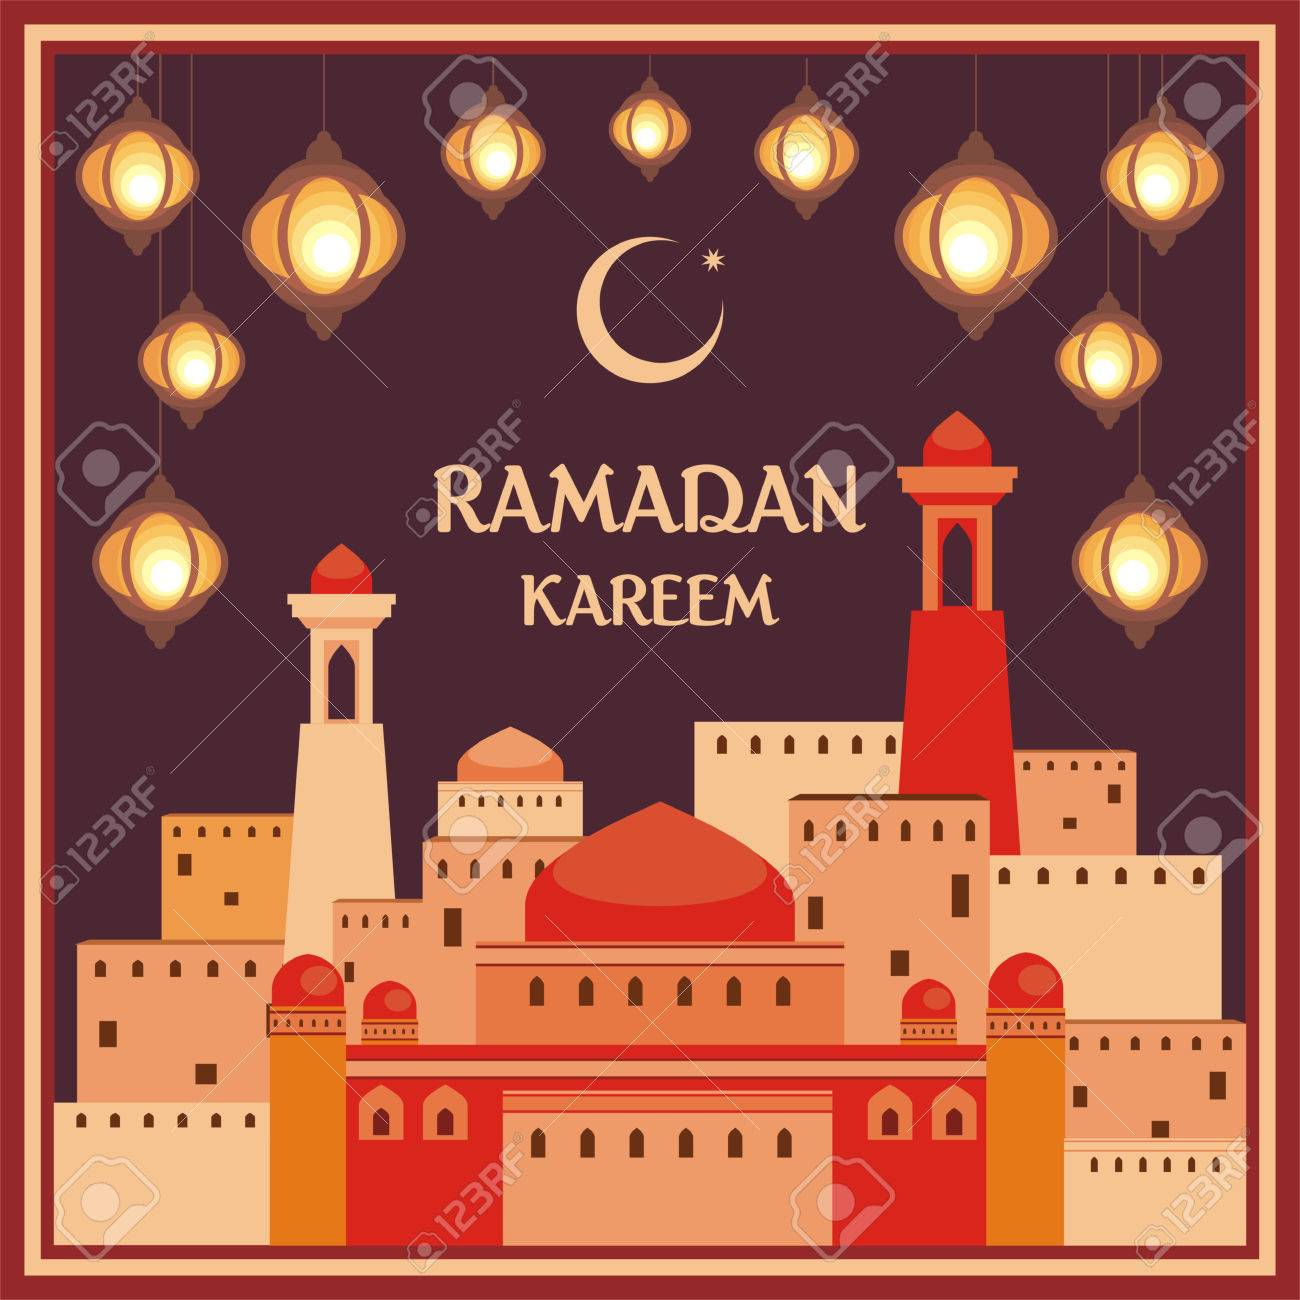 Ramadan greeting card with the image of the beautiful lanterns